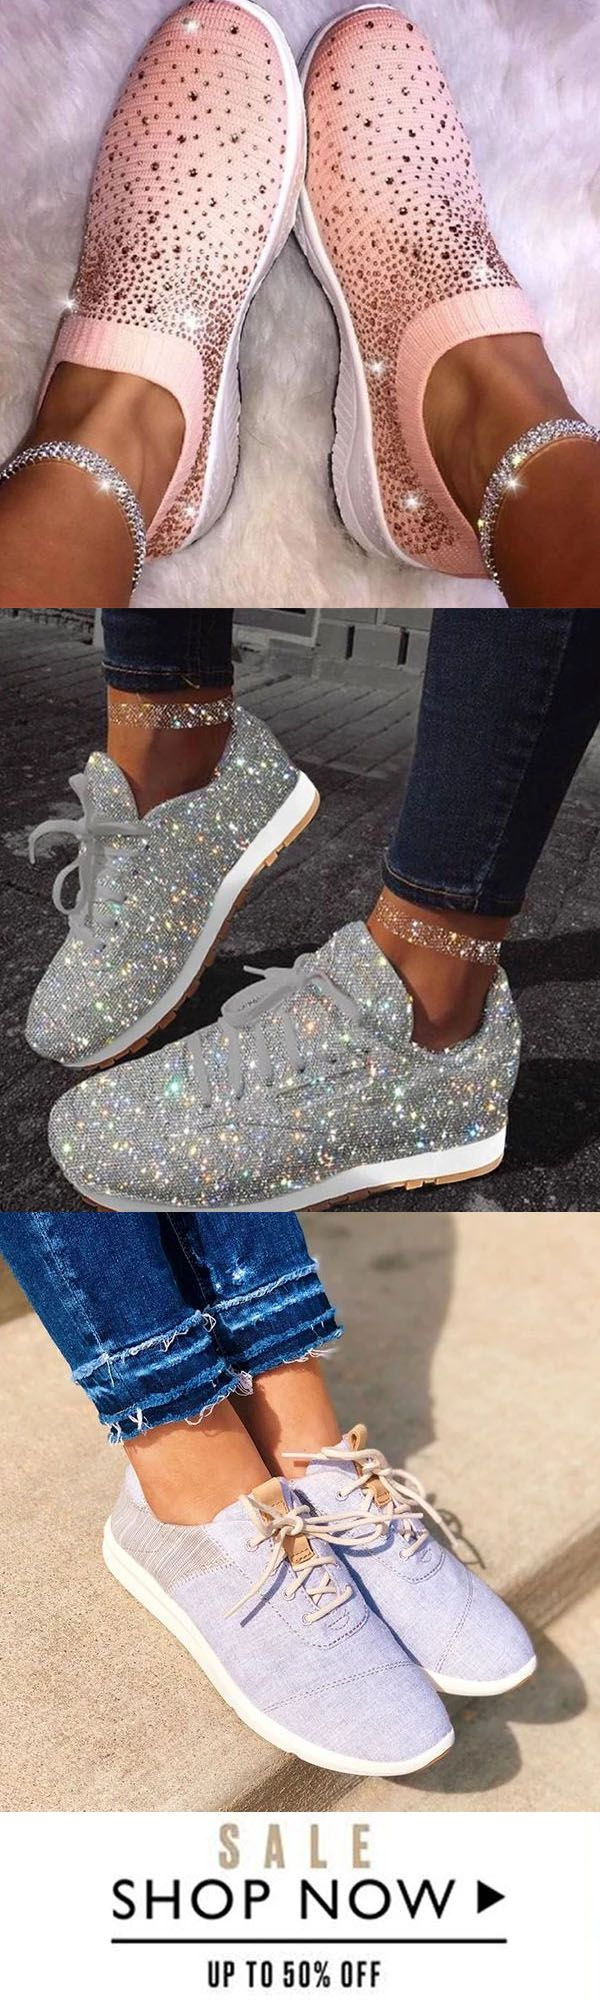 Save 50% now >> Women Fashion Casual Sneakers   – Bastelidee